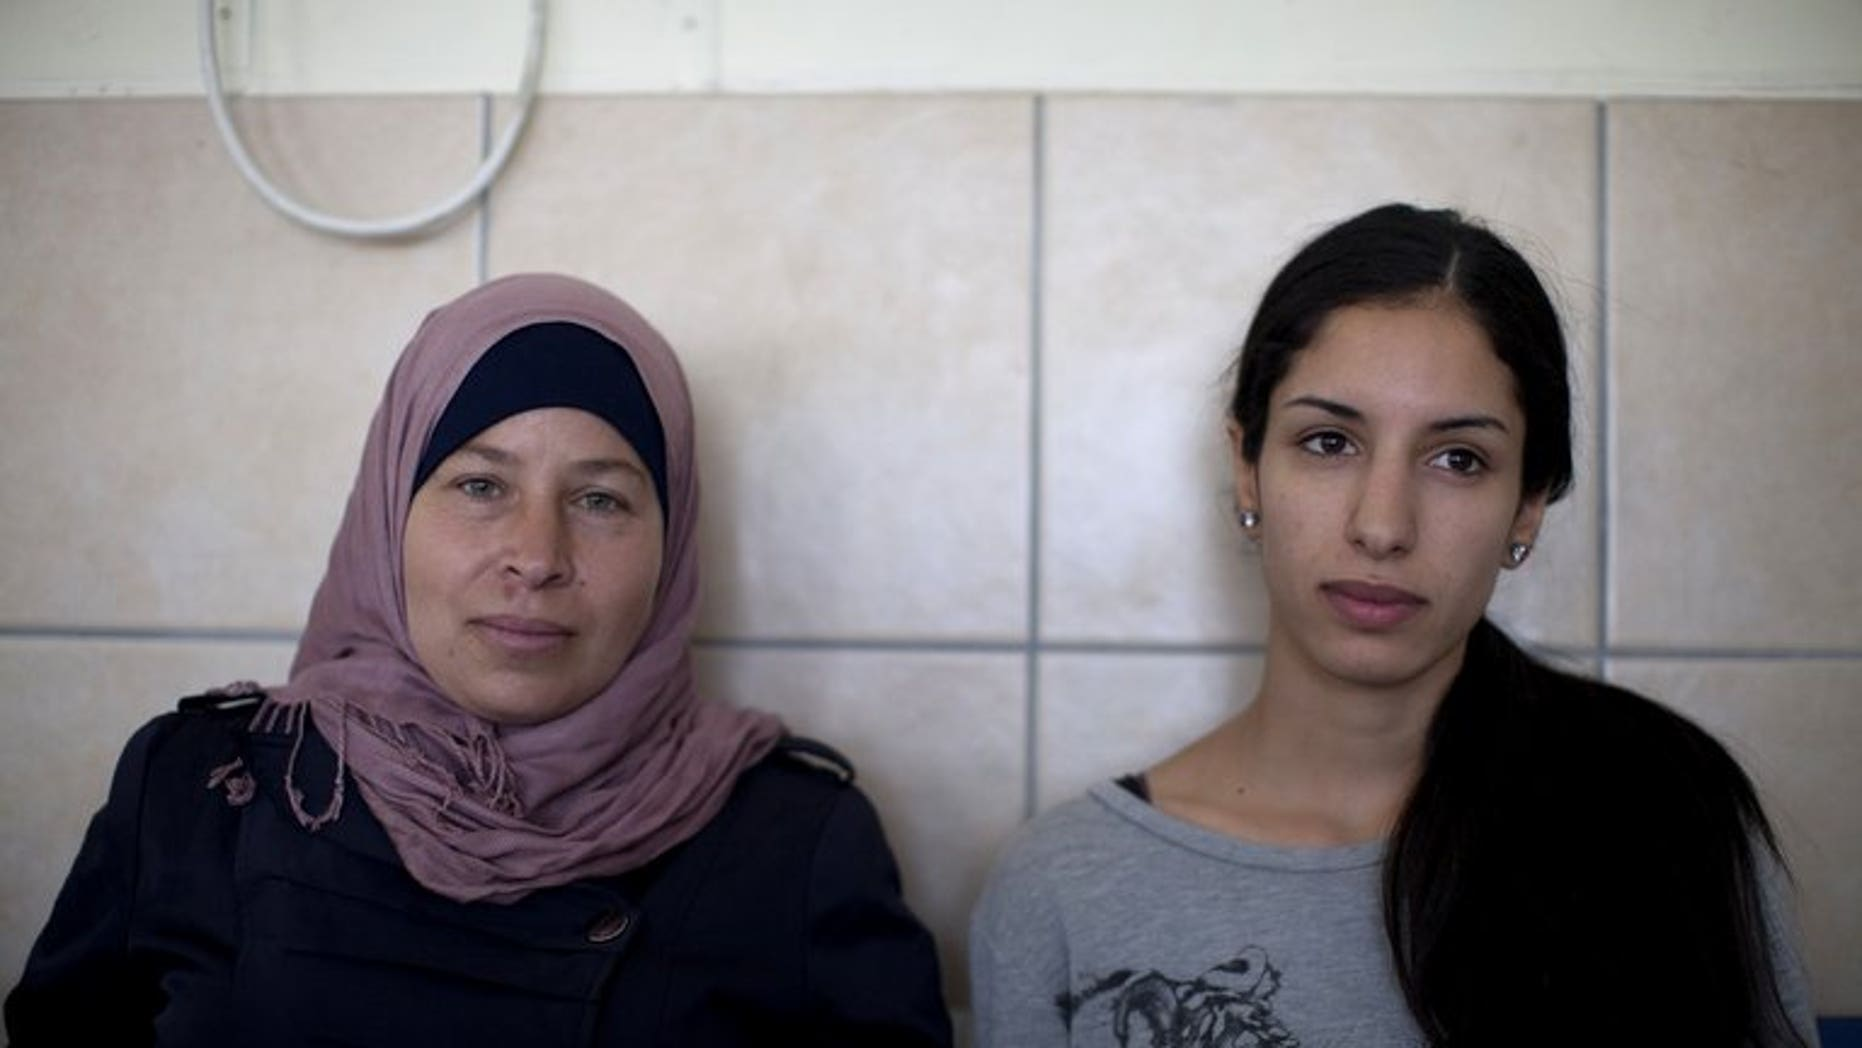 Palestinian activist Nariman a-Tamimi (left) and Rana Hamadah sit for the verdict during their trial at Israel's Ofer military court near the West Bank city of Ramallah on July 9, 2013. An Israeli military court formally charged two Palestinian women for their involvement in a peaceful demonstration in the West Bank last month.